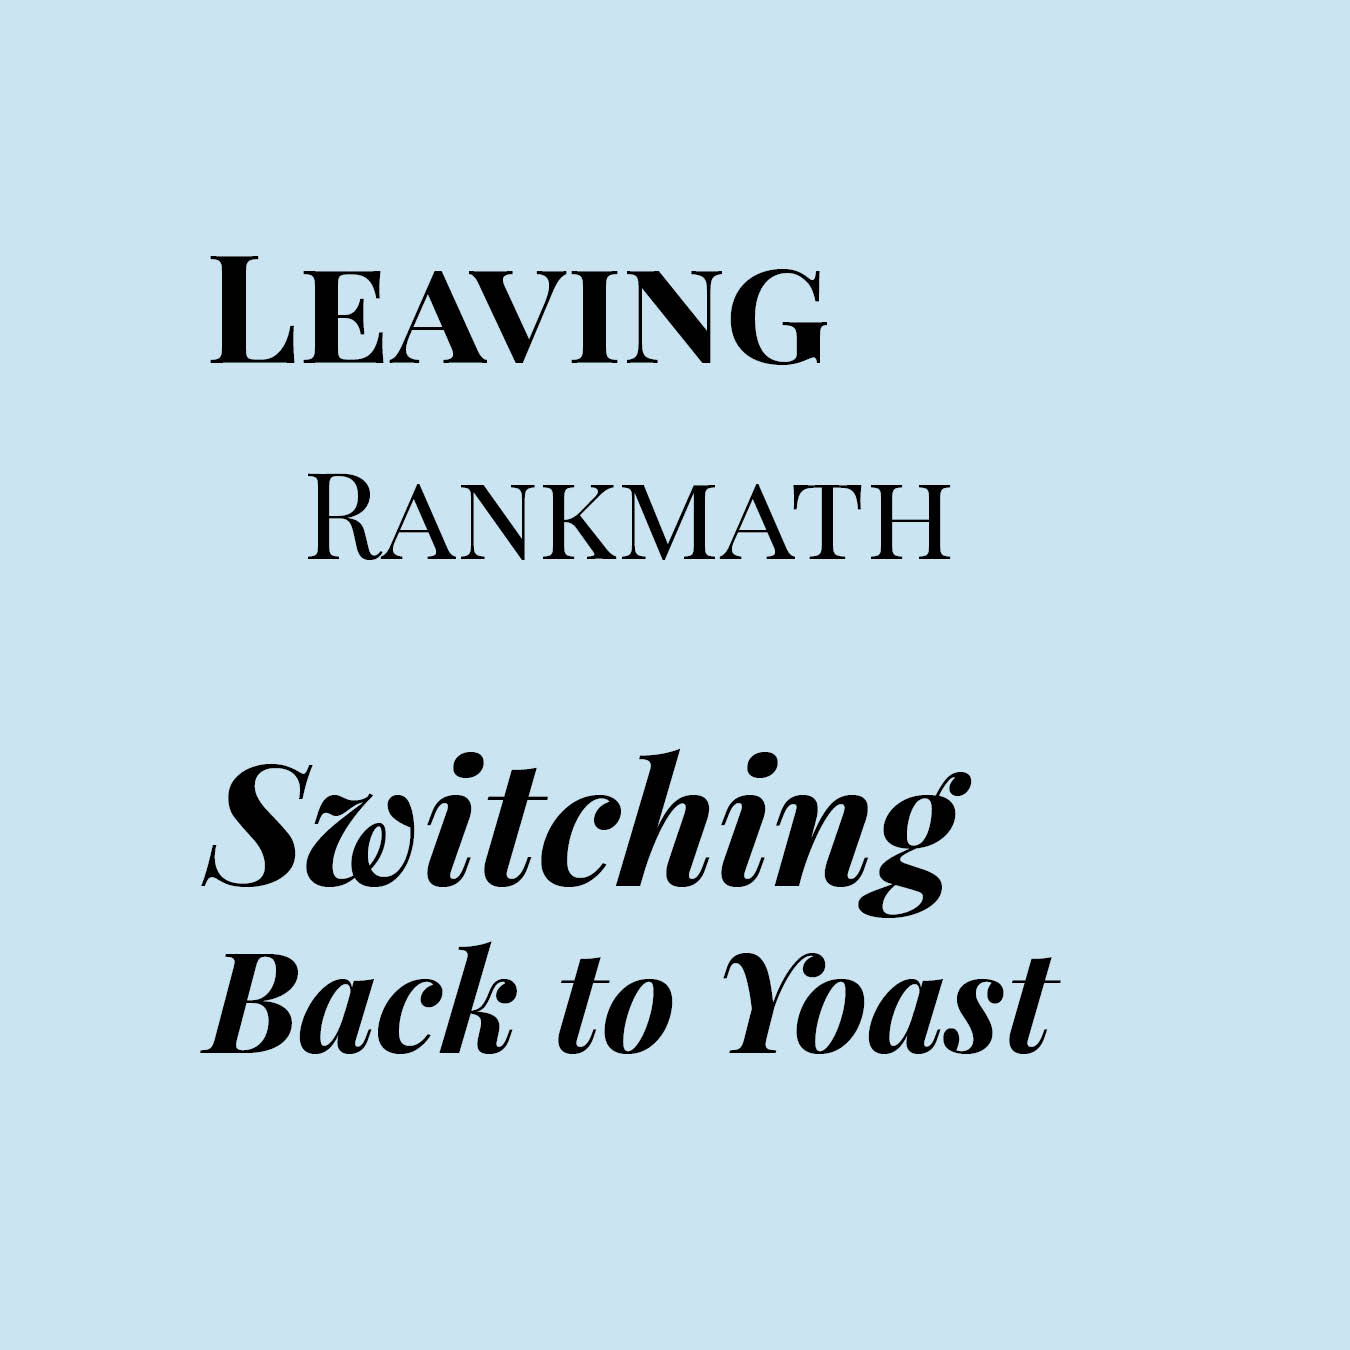 leaving rankmath for yoast